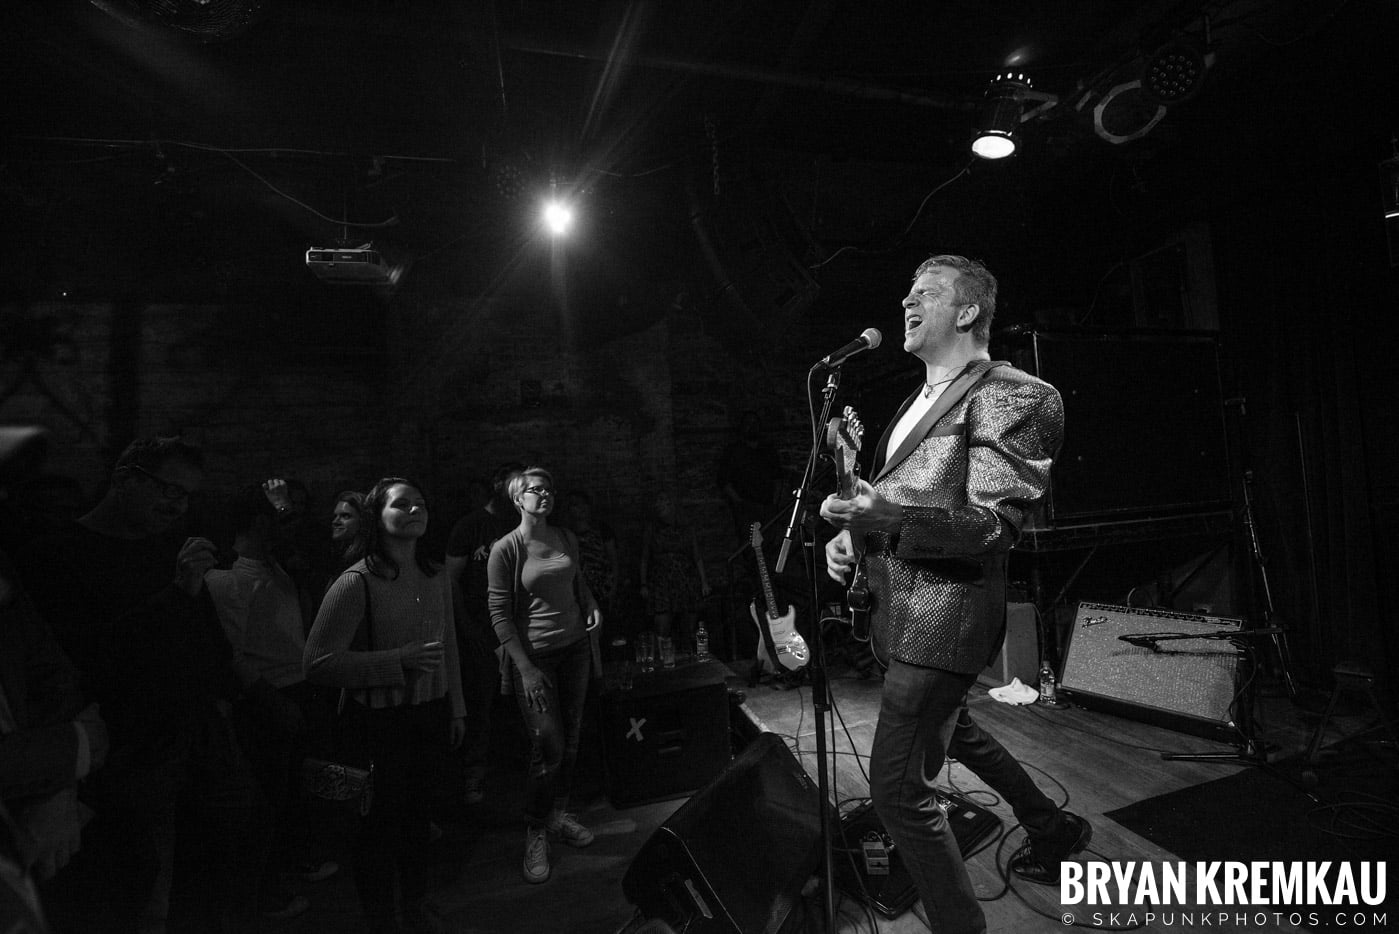 The Push Stars @ The Bowery Electric, NYC - 9.29.17 (25)